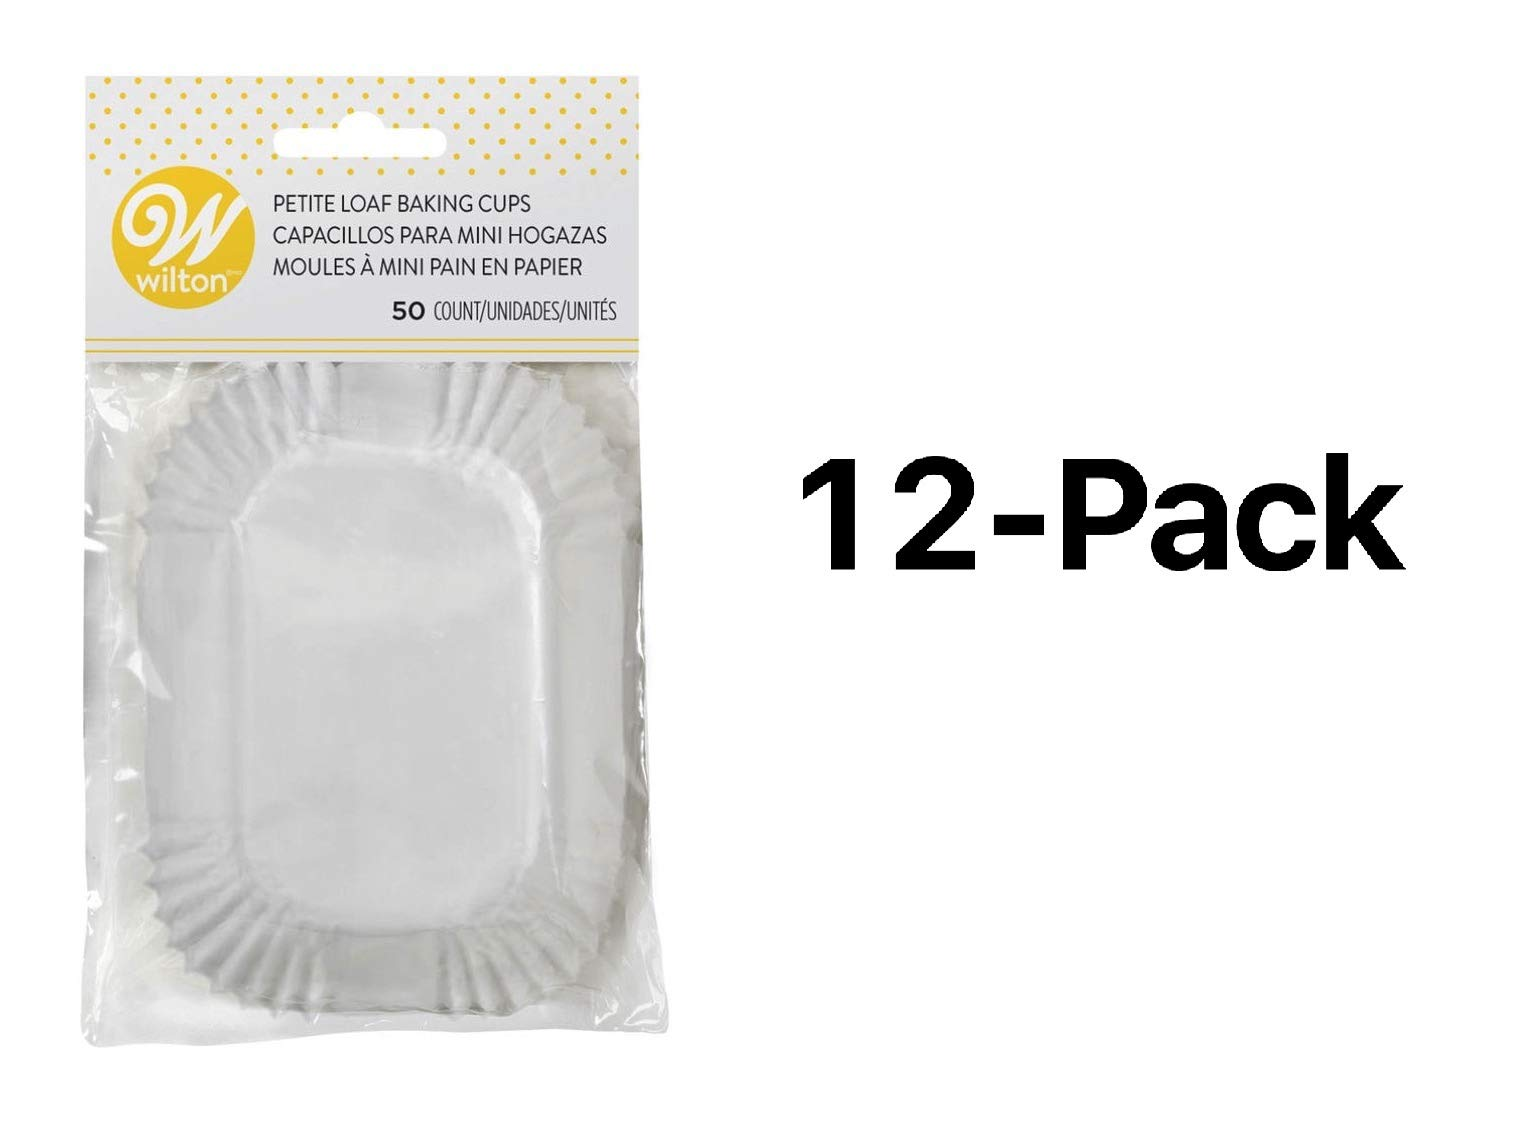 Wilton Mini Loaf Baking Liner/Cups White 50 Pack Bread/Muffins/Cake (12-Pack) by Wilton